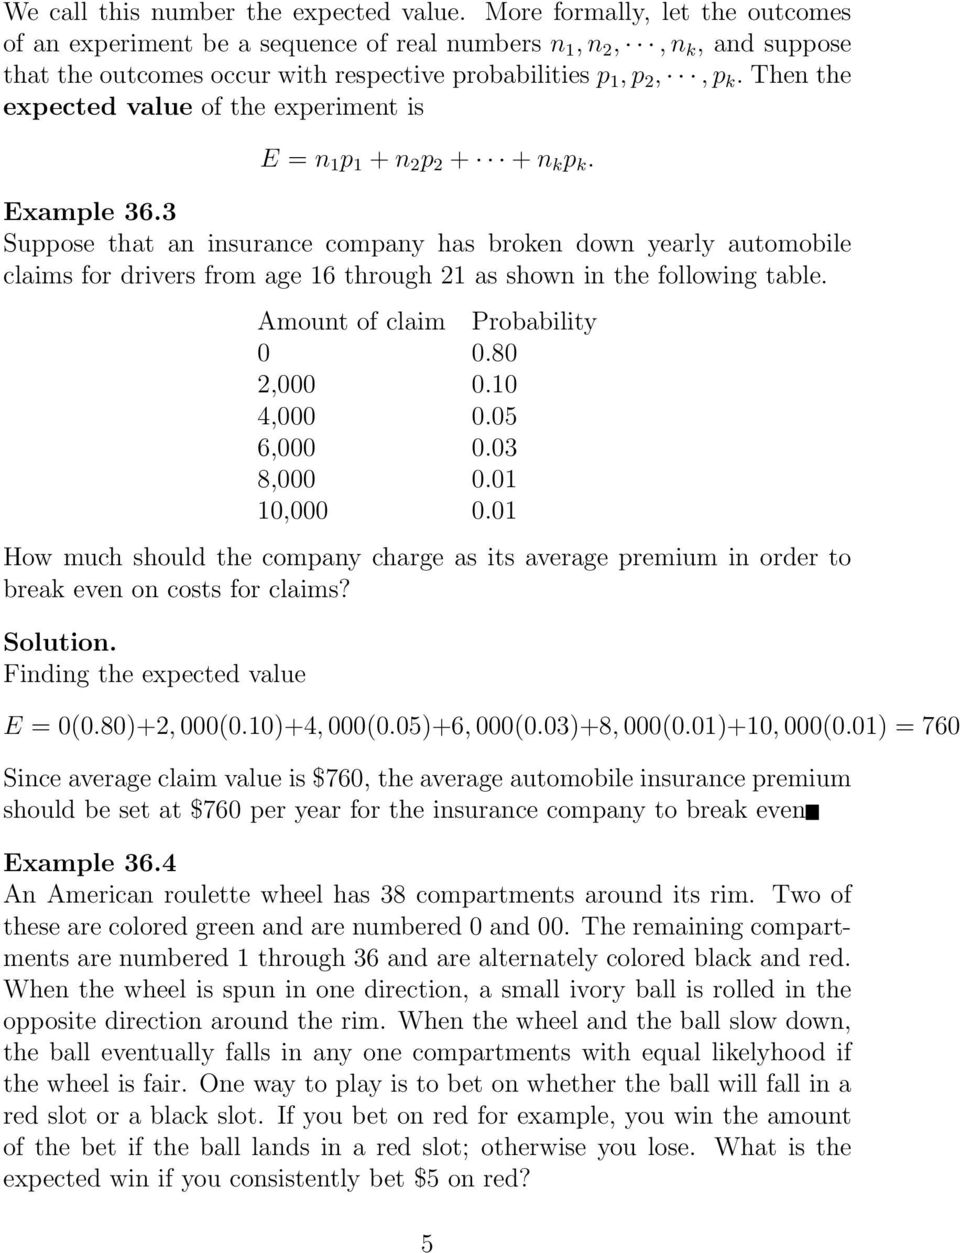 Then the expected value of the experiment is E n 1 p 1 + n 2 p 2 + + n k p k. Example 36.